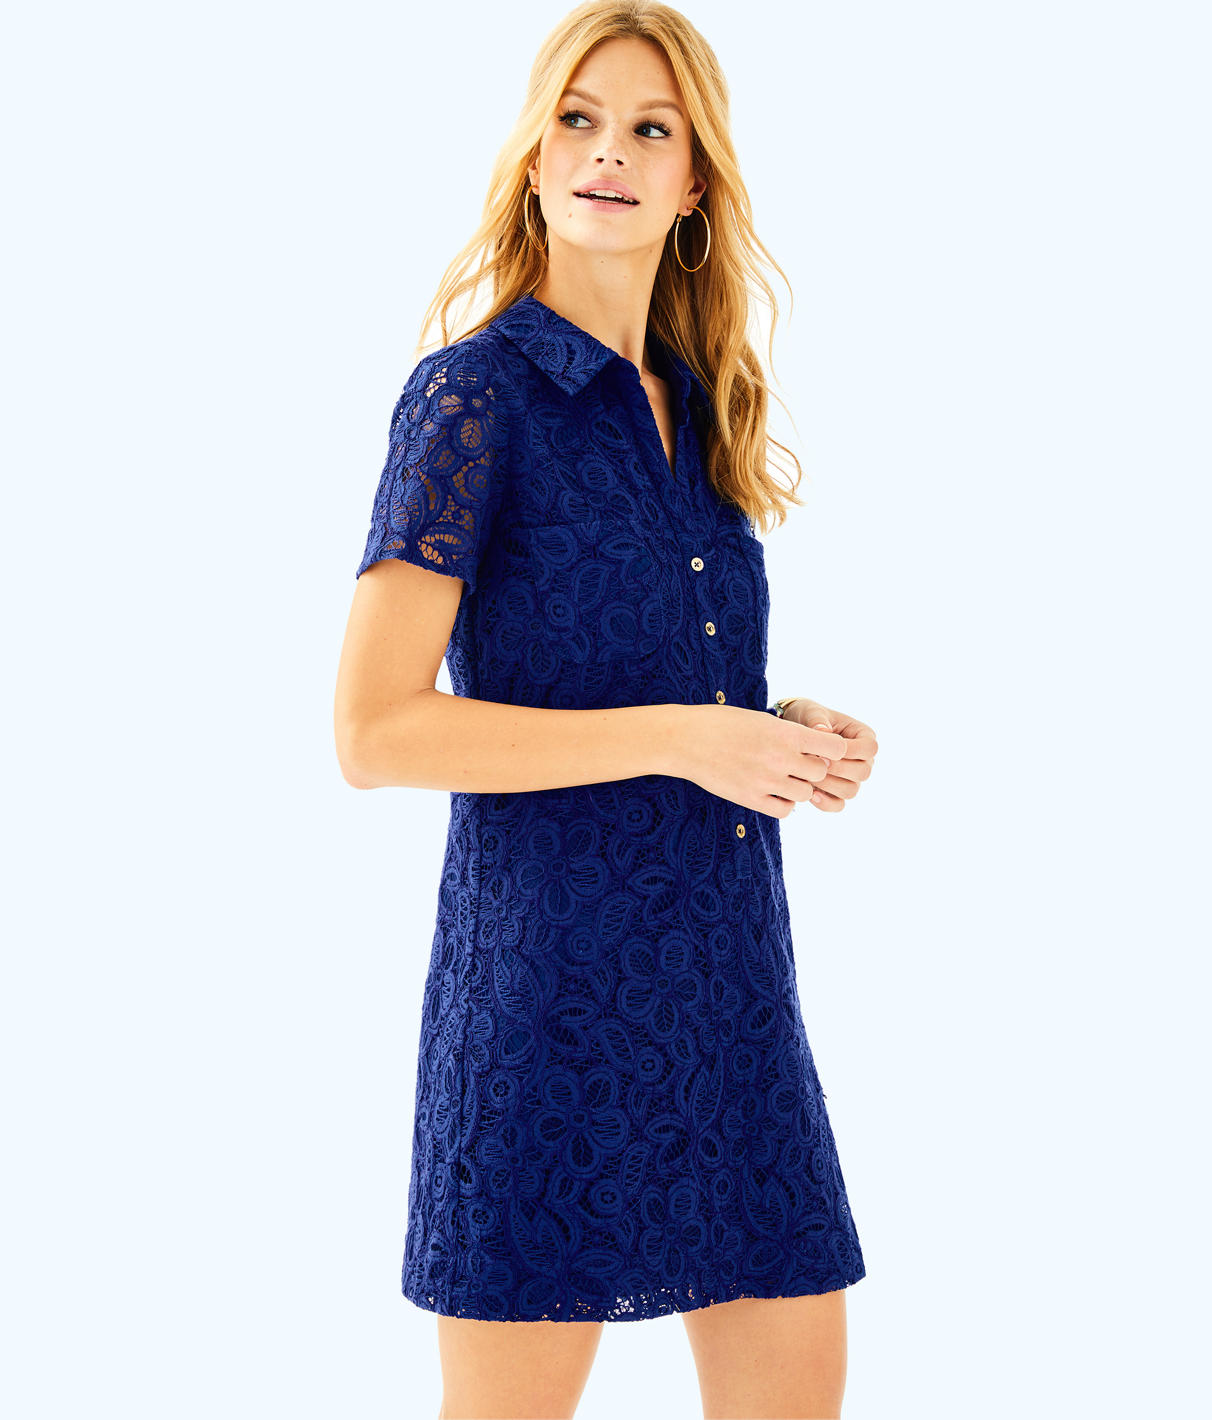 Lilly Pulitzer Lilly Pulitzer Womens Nelle Dress